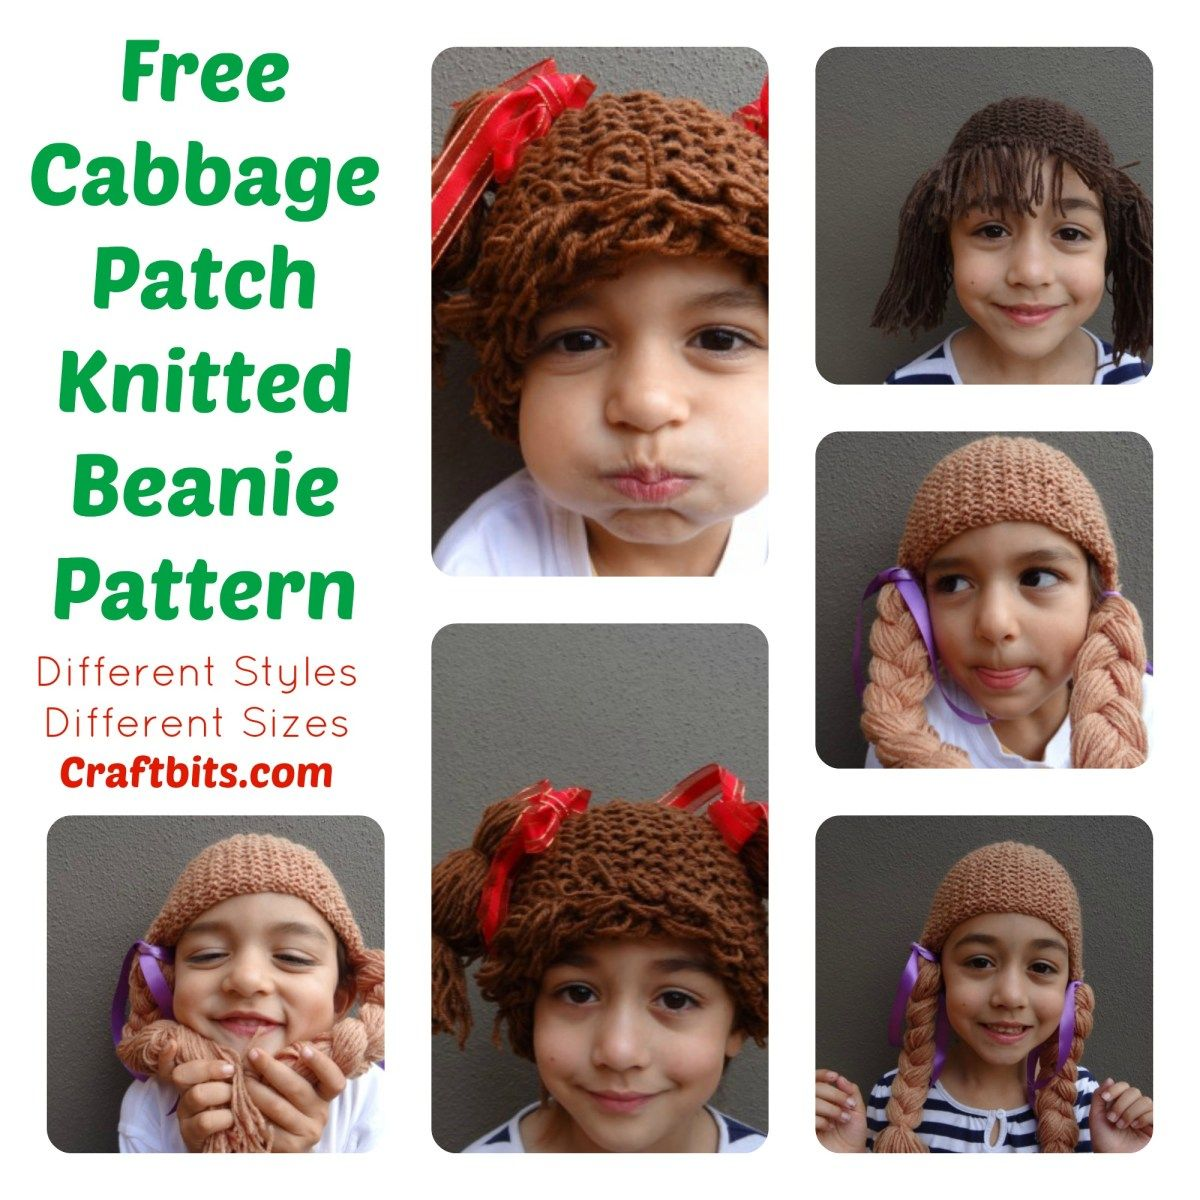 Cabbage Patch Beanie Pattern | Cabbage patch, Cabbage and Patches